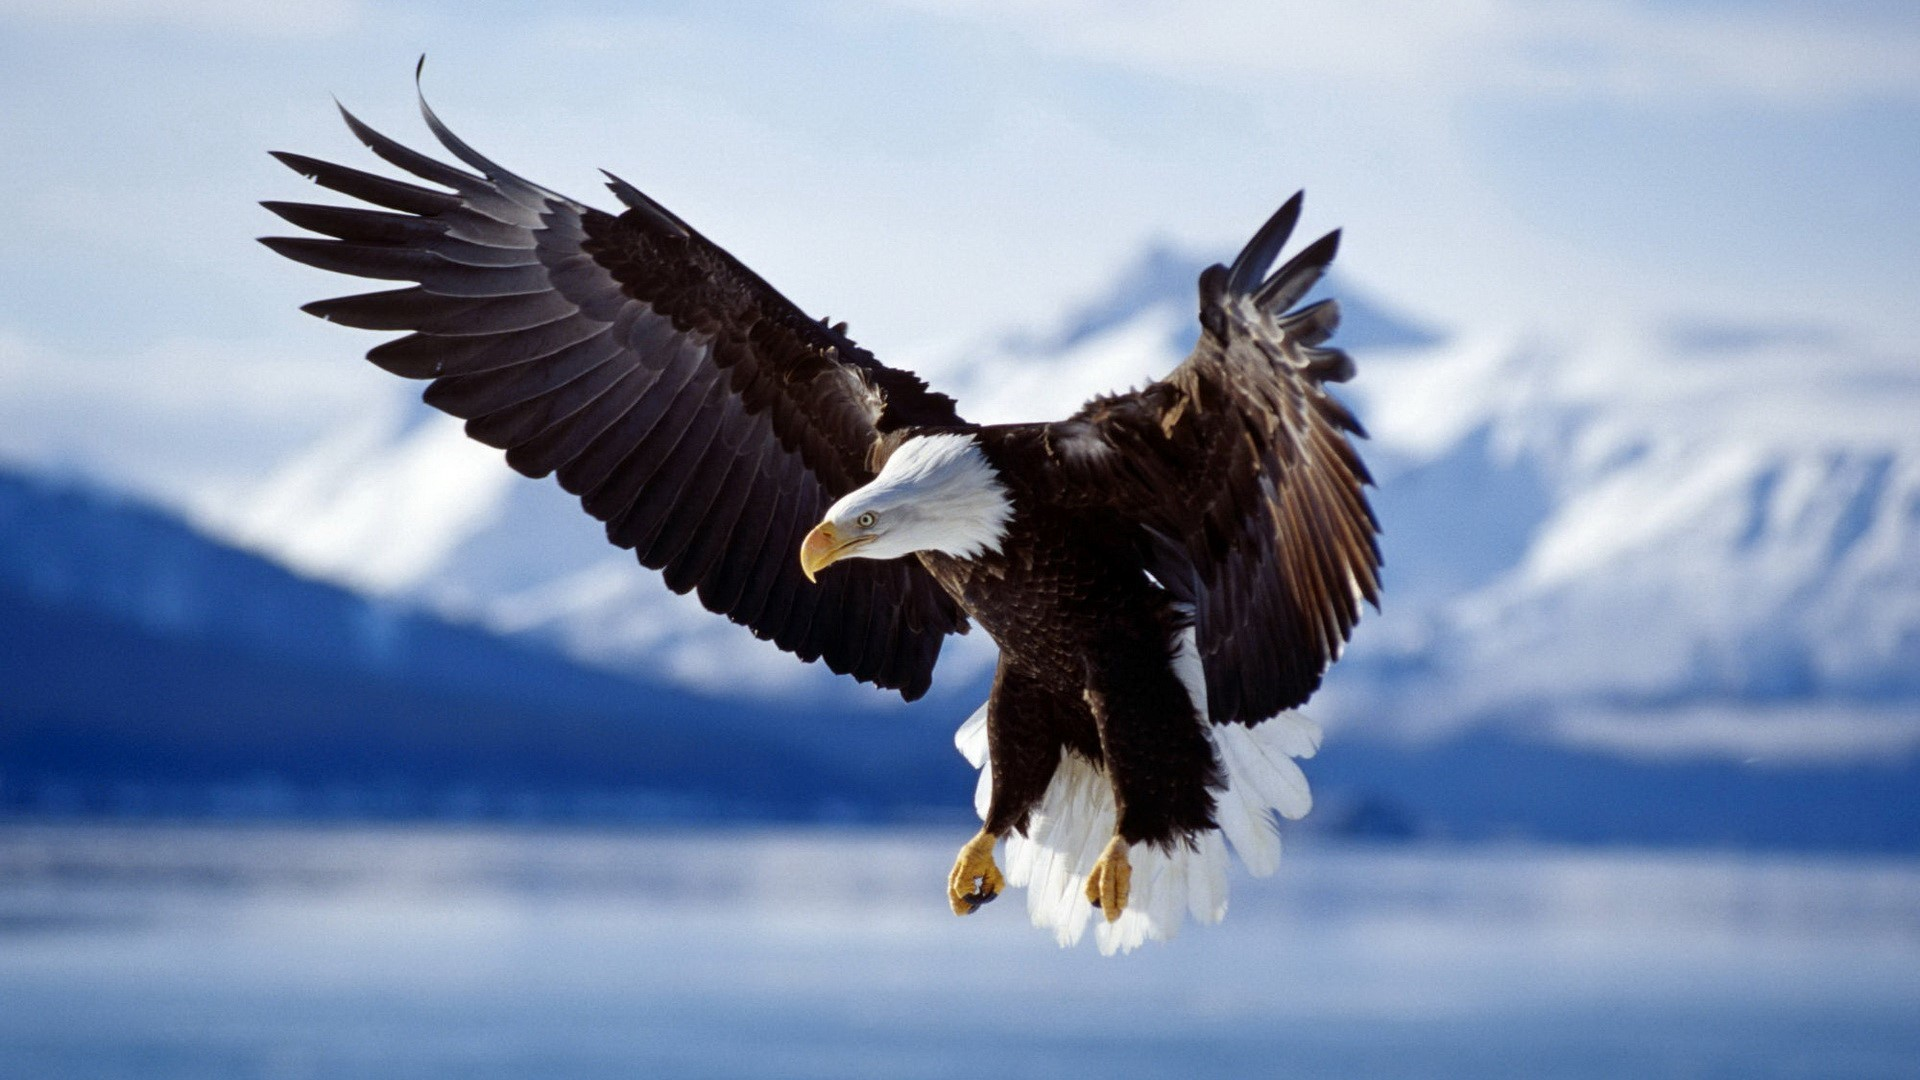 1920x1080 ... gallery free download also see Bald Eagle Picture, Bald Eagle Desktop  Wallpaper find here eagle bird photos Backgrounds hd wallpapers free  download see ...